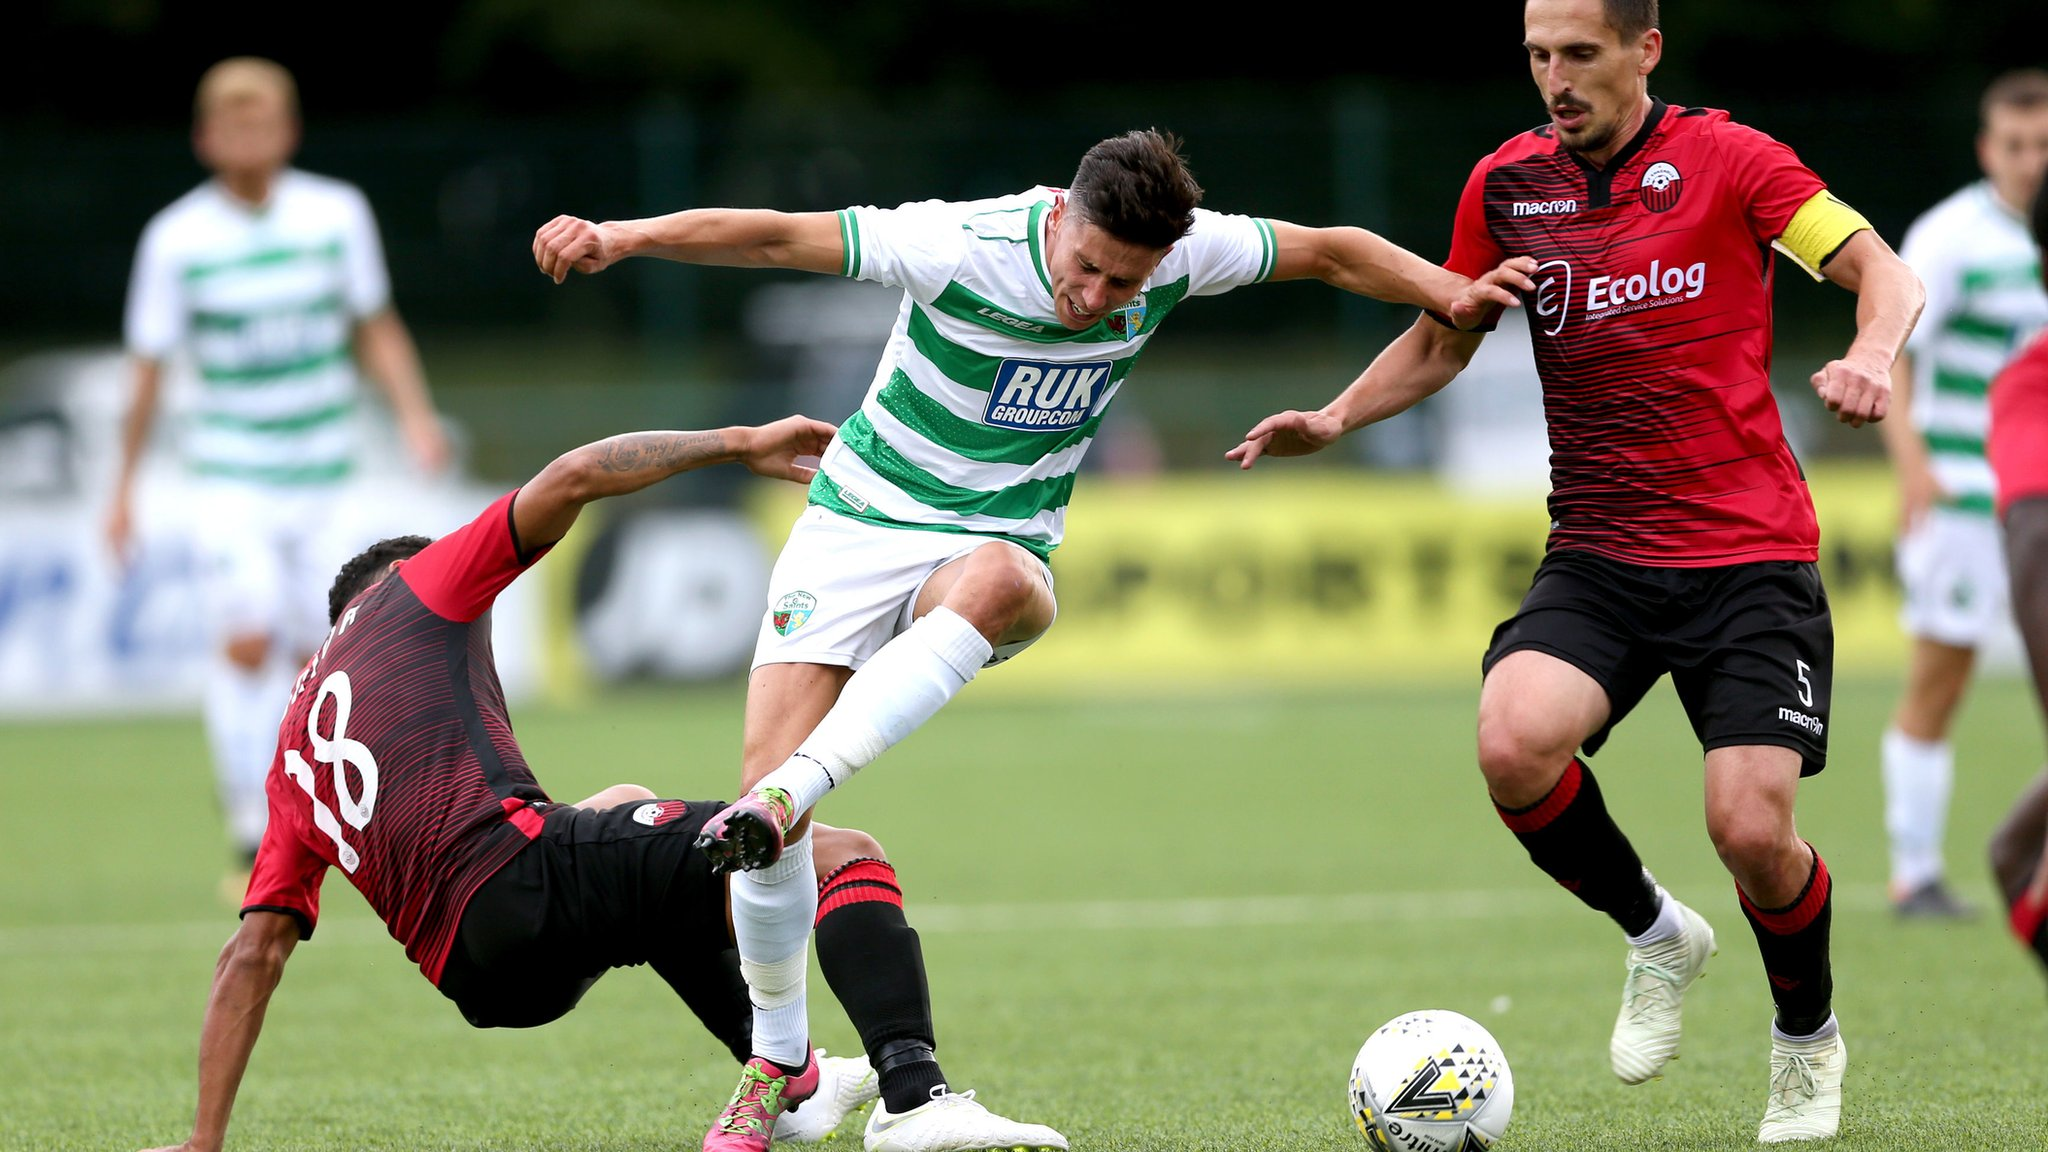 TNS fall just short of extraordinary Champions League comeback